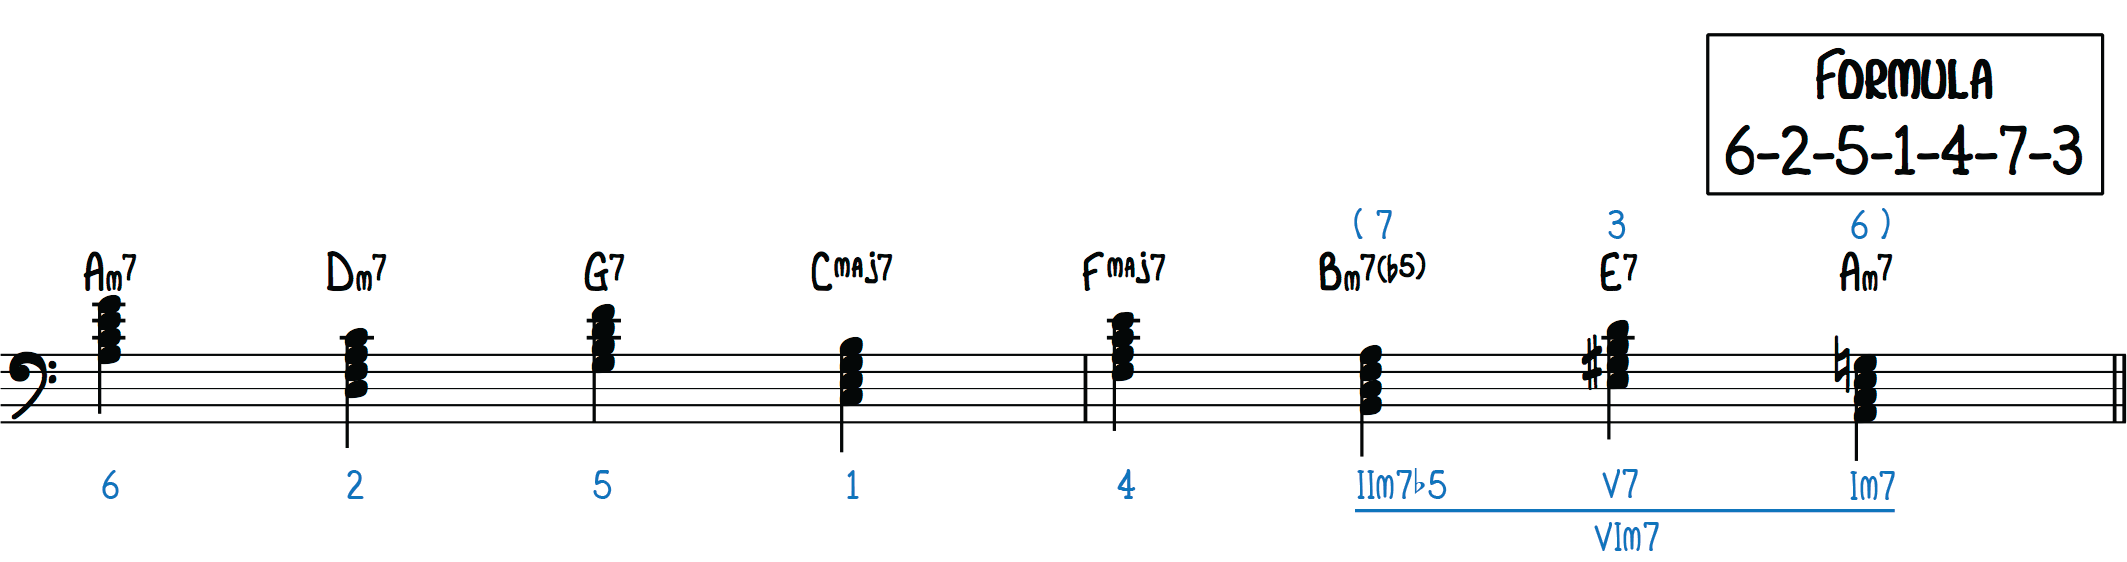 The Cycle of 5ths Progression (6-2-5-1-4-7-3) Fly Me to the Moon, Autumn Leaves, All the Things You Are, Memorize Jazz songs